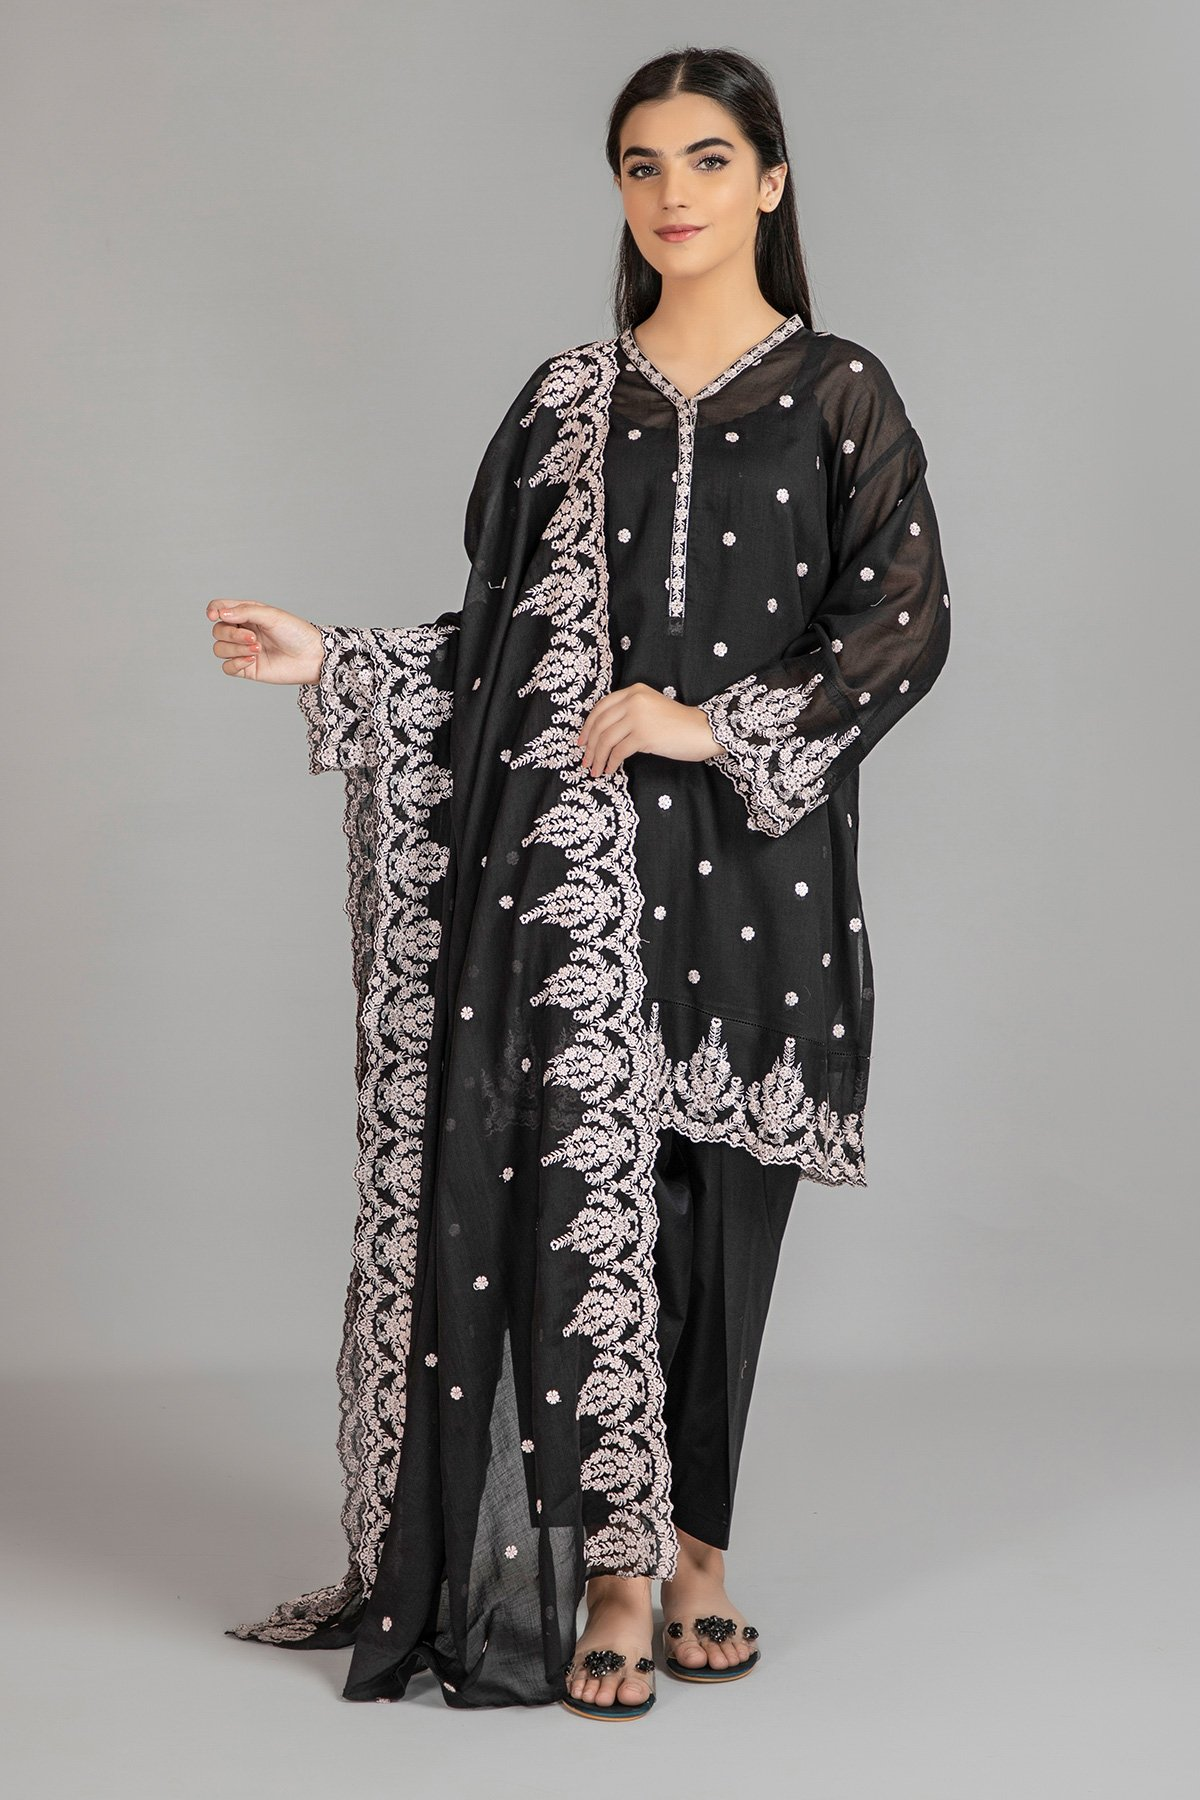 Dyed & Embroidered Shirt And Dupatta.